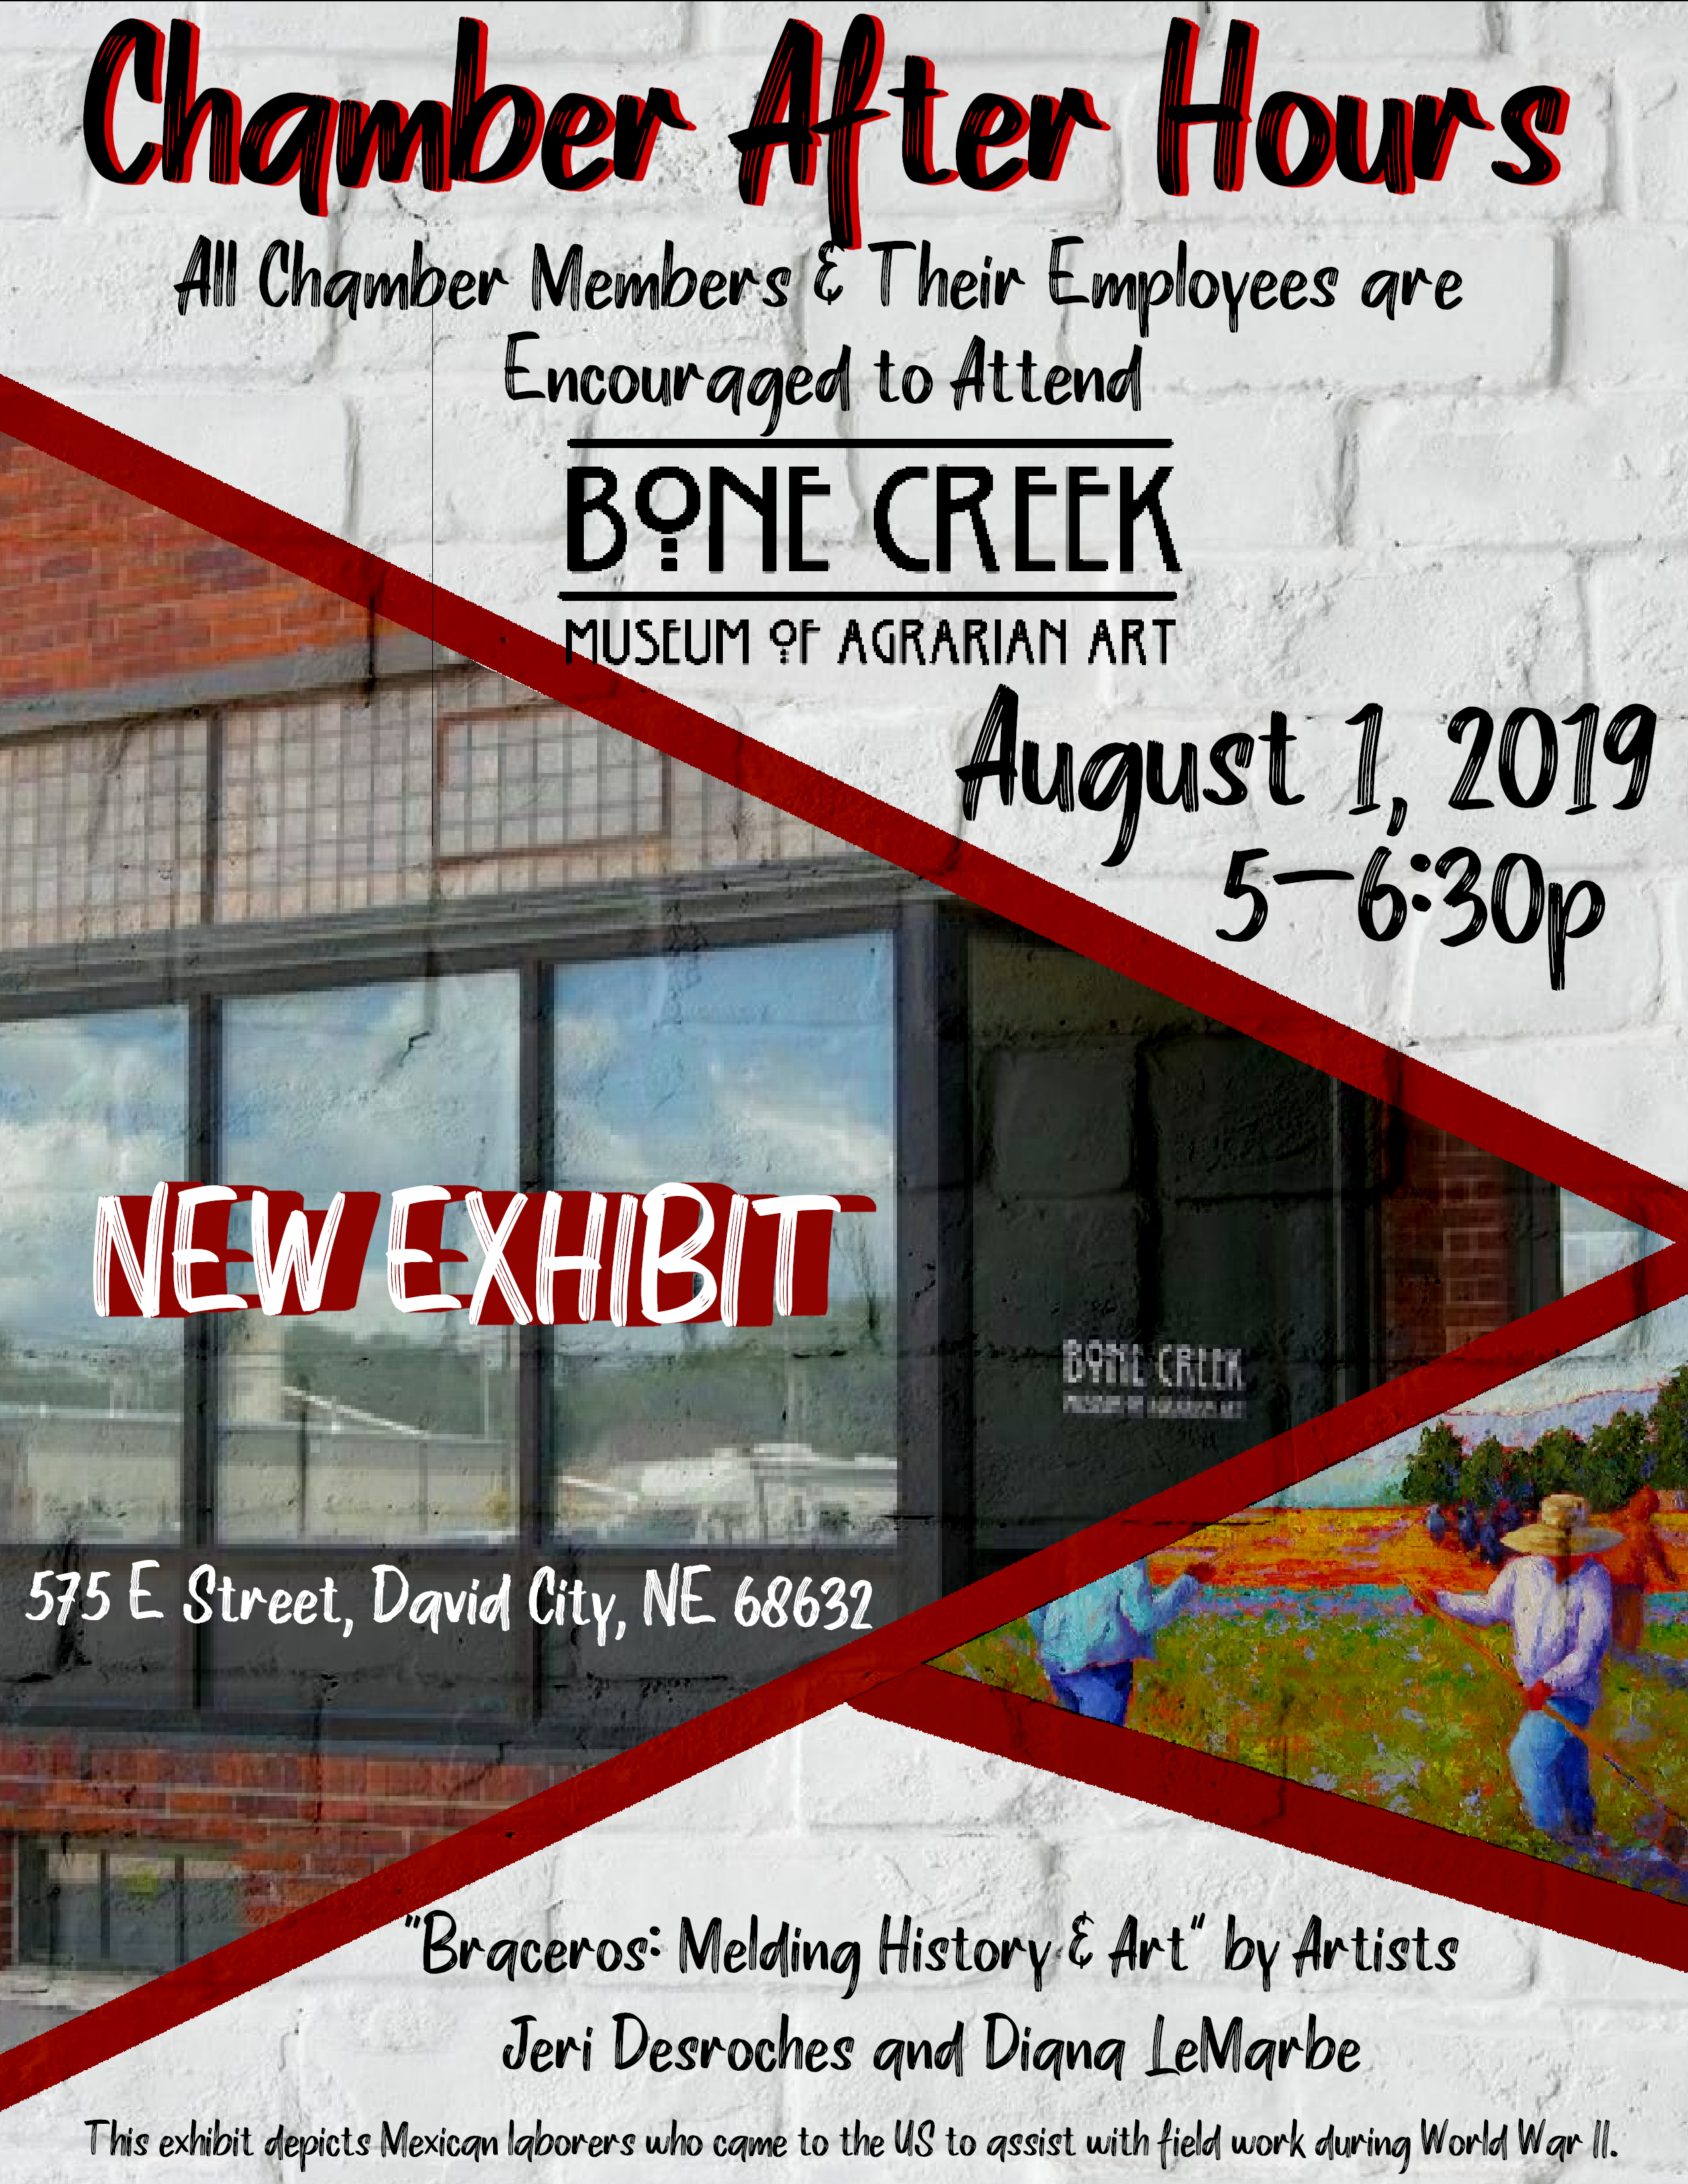 Chamber After Hours - Bone Creek Museum of Agarian Art